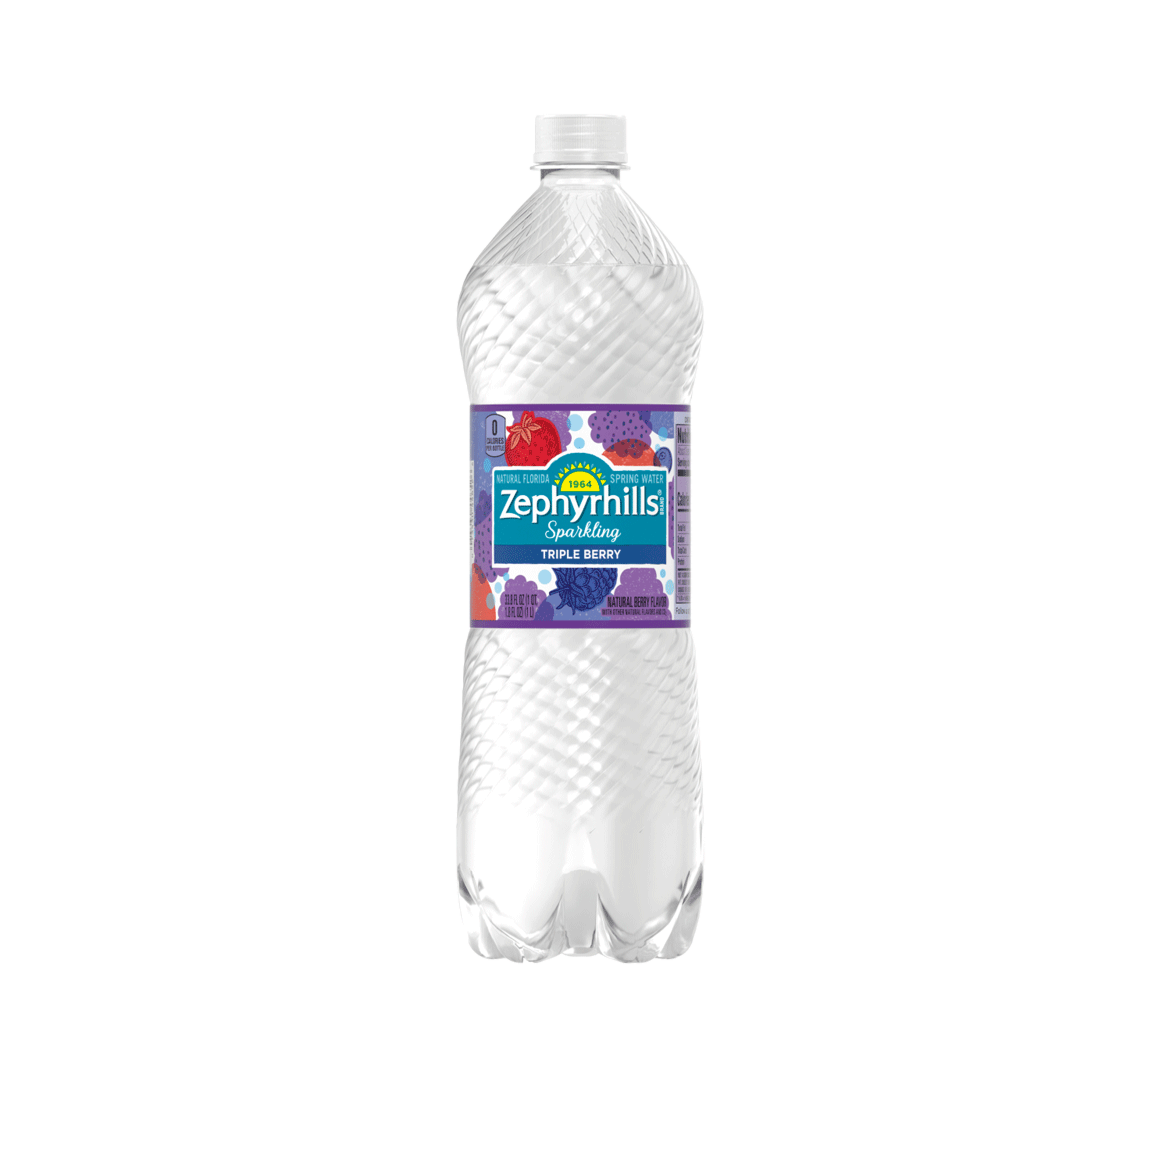 Zephyrhills® Triple Berry Sparkling Water Image2